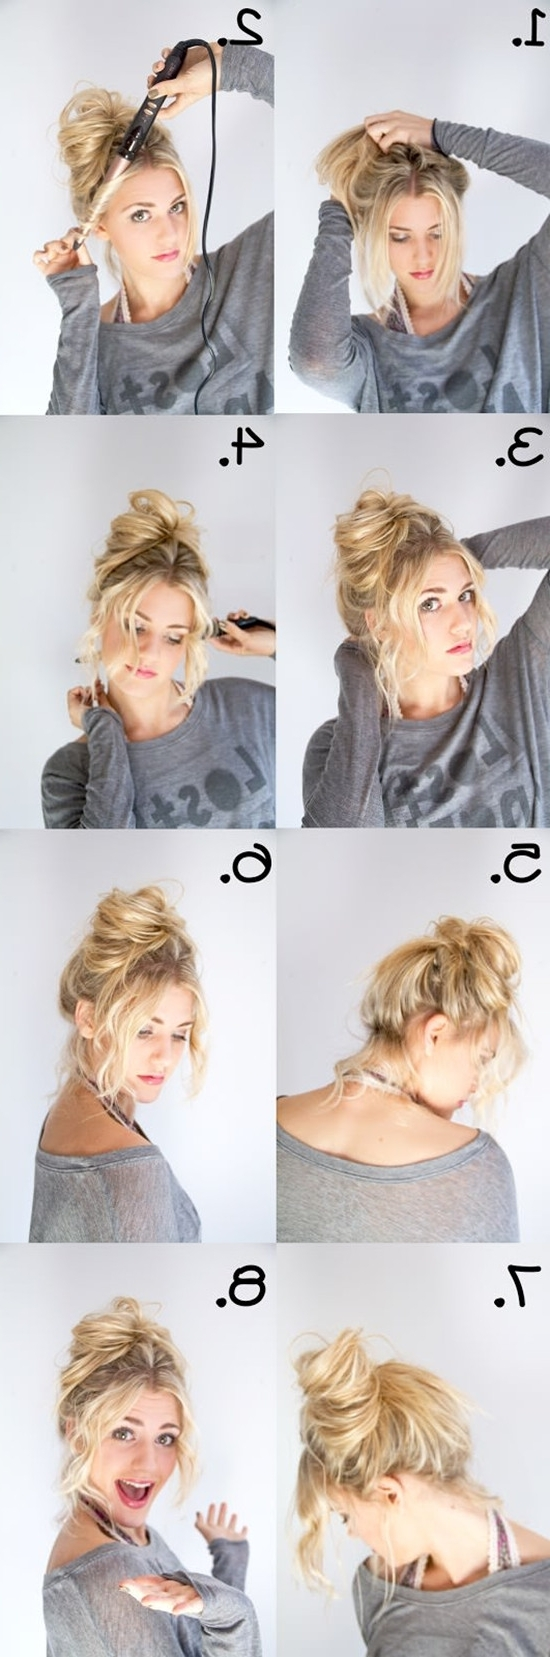 Messy Updo For Thin Hair 2018 – Forensicanth – Forensicanth Intended For Messy Updo Hairstyles For Thin Hair (View 13 of 15)